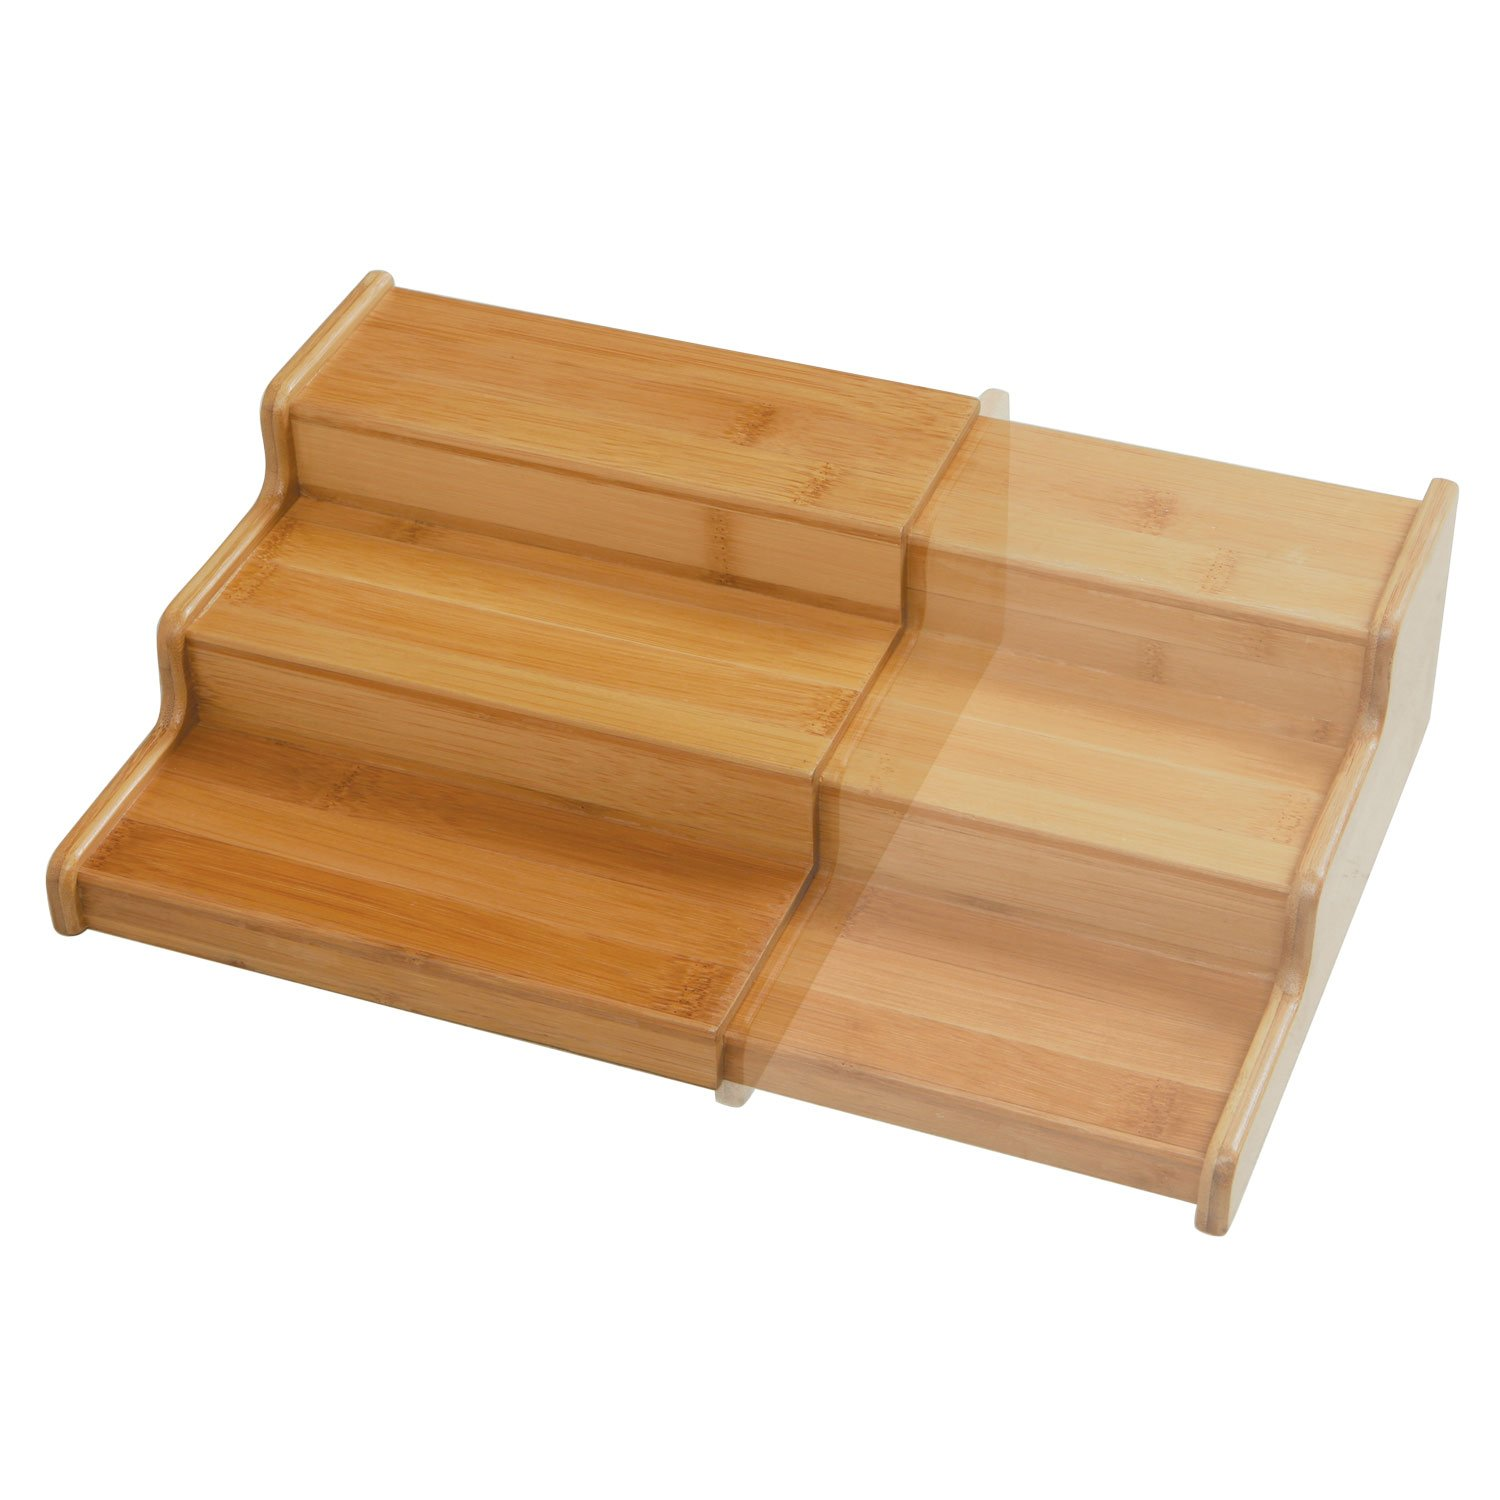 Seville Classics 3-Tier Expandable Bamboo Spice Rack Step Shelf Cabinet Organizer by Seville Classics